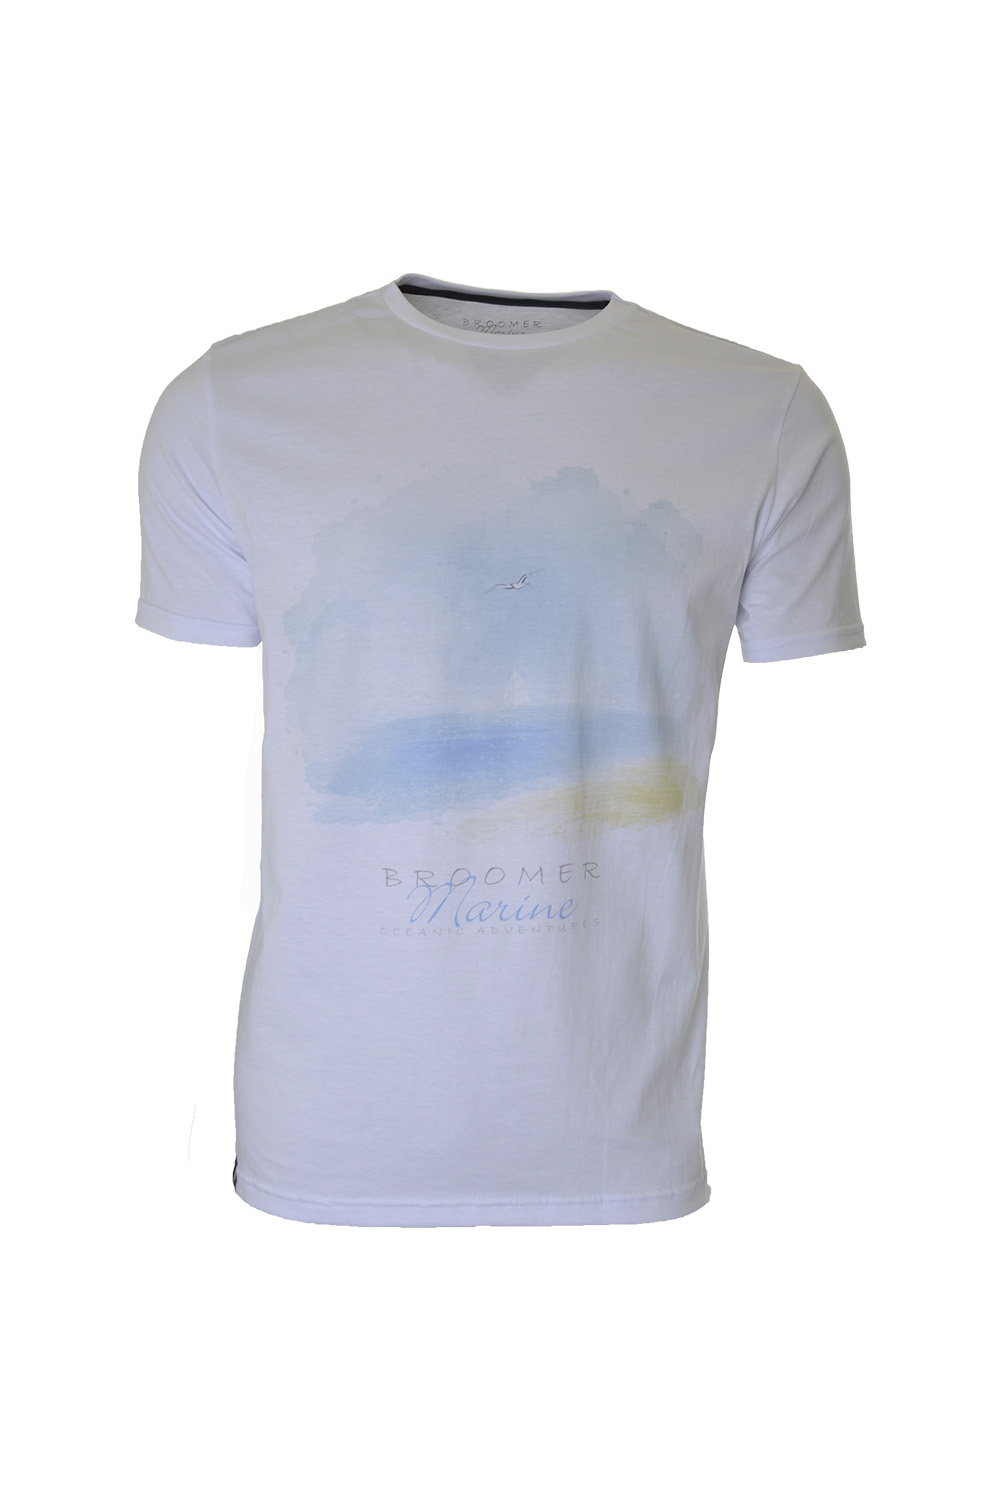 CAMISETA MC MARINE SUPER SLIM ALGODAO GOLA CARECA ESTAMPA BRANCO